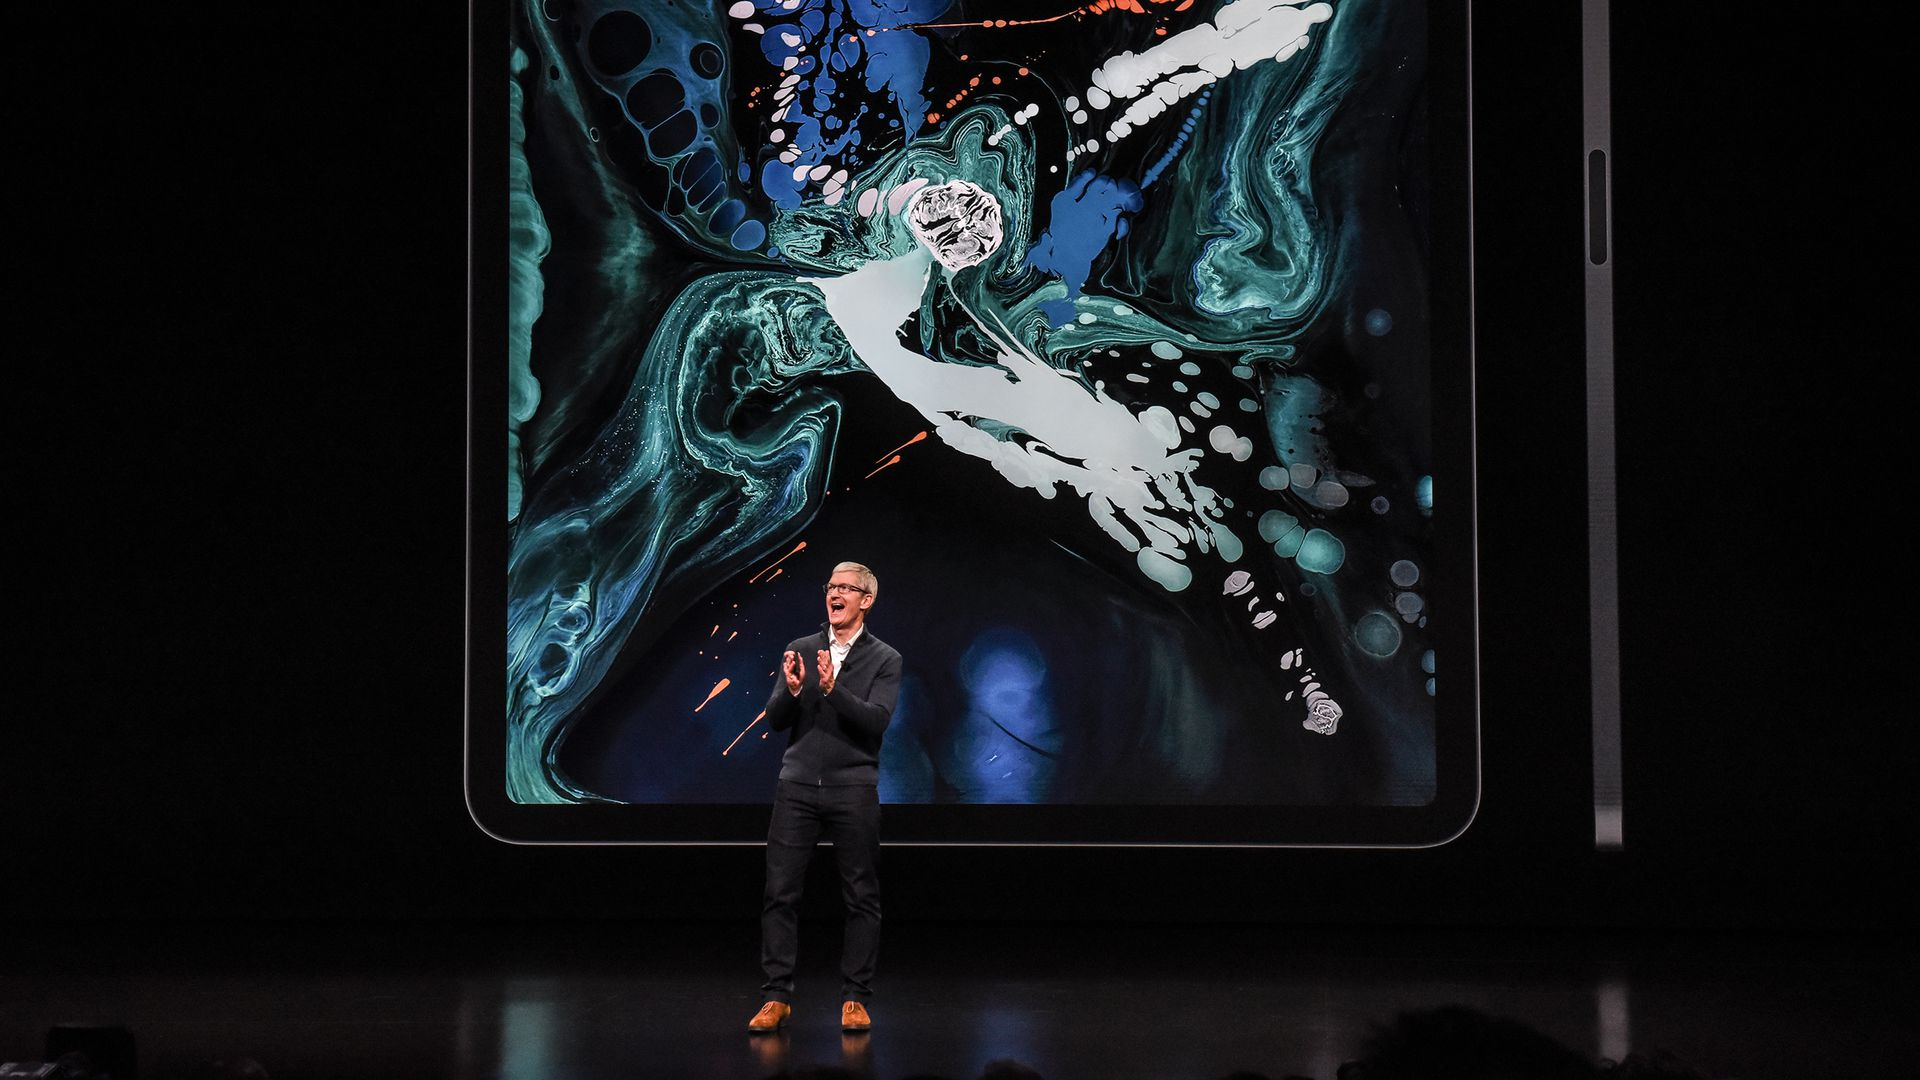 Apple CEO Tim Cook introducing products onstage.